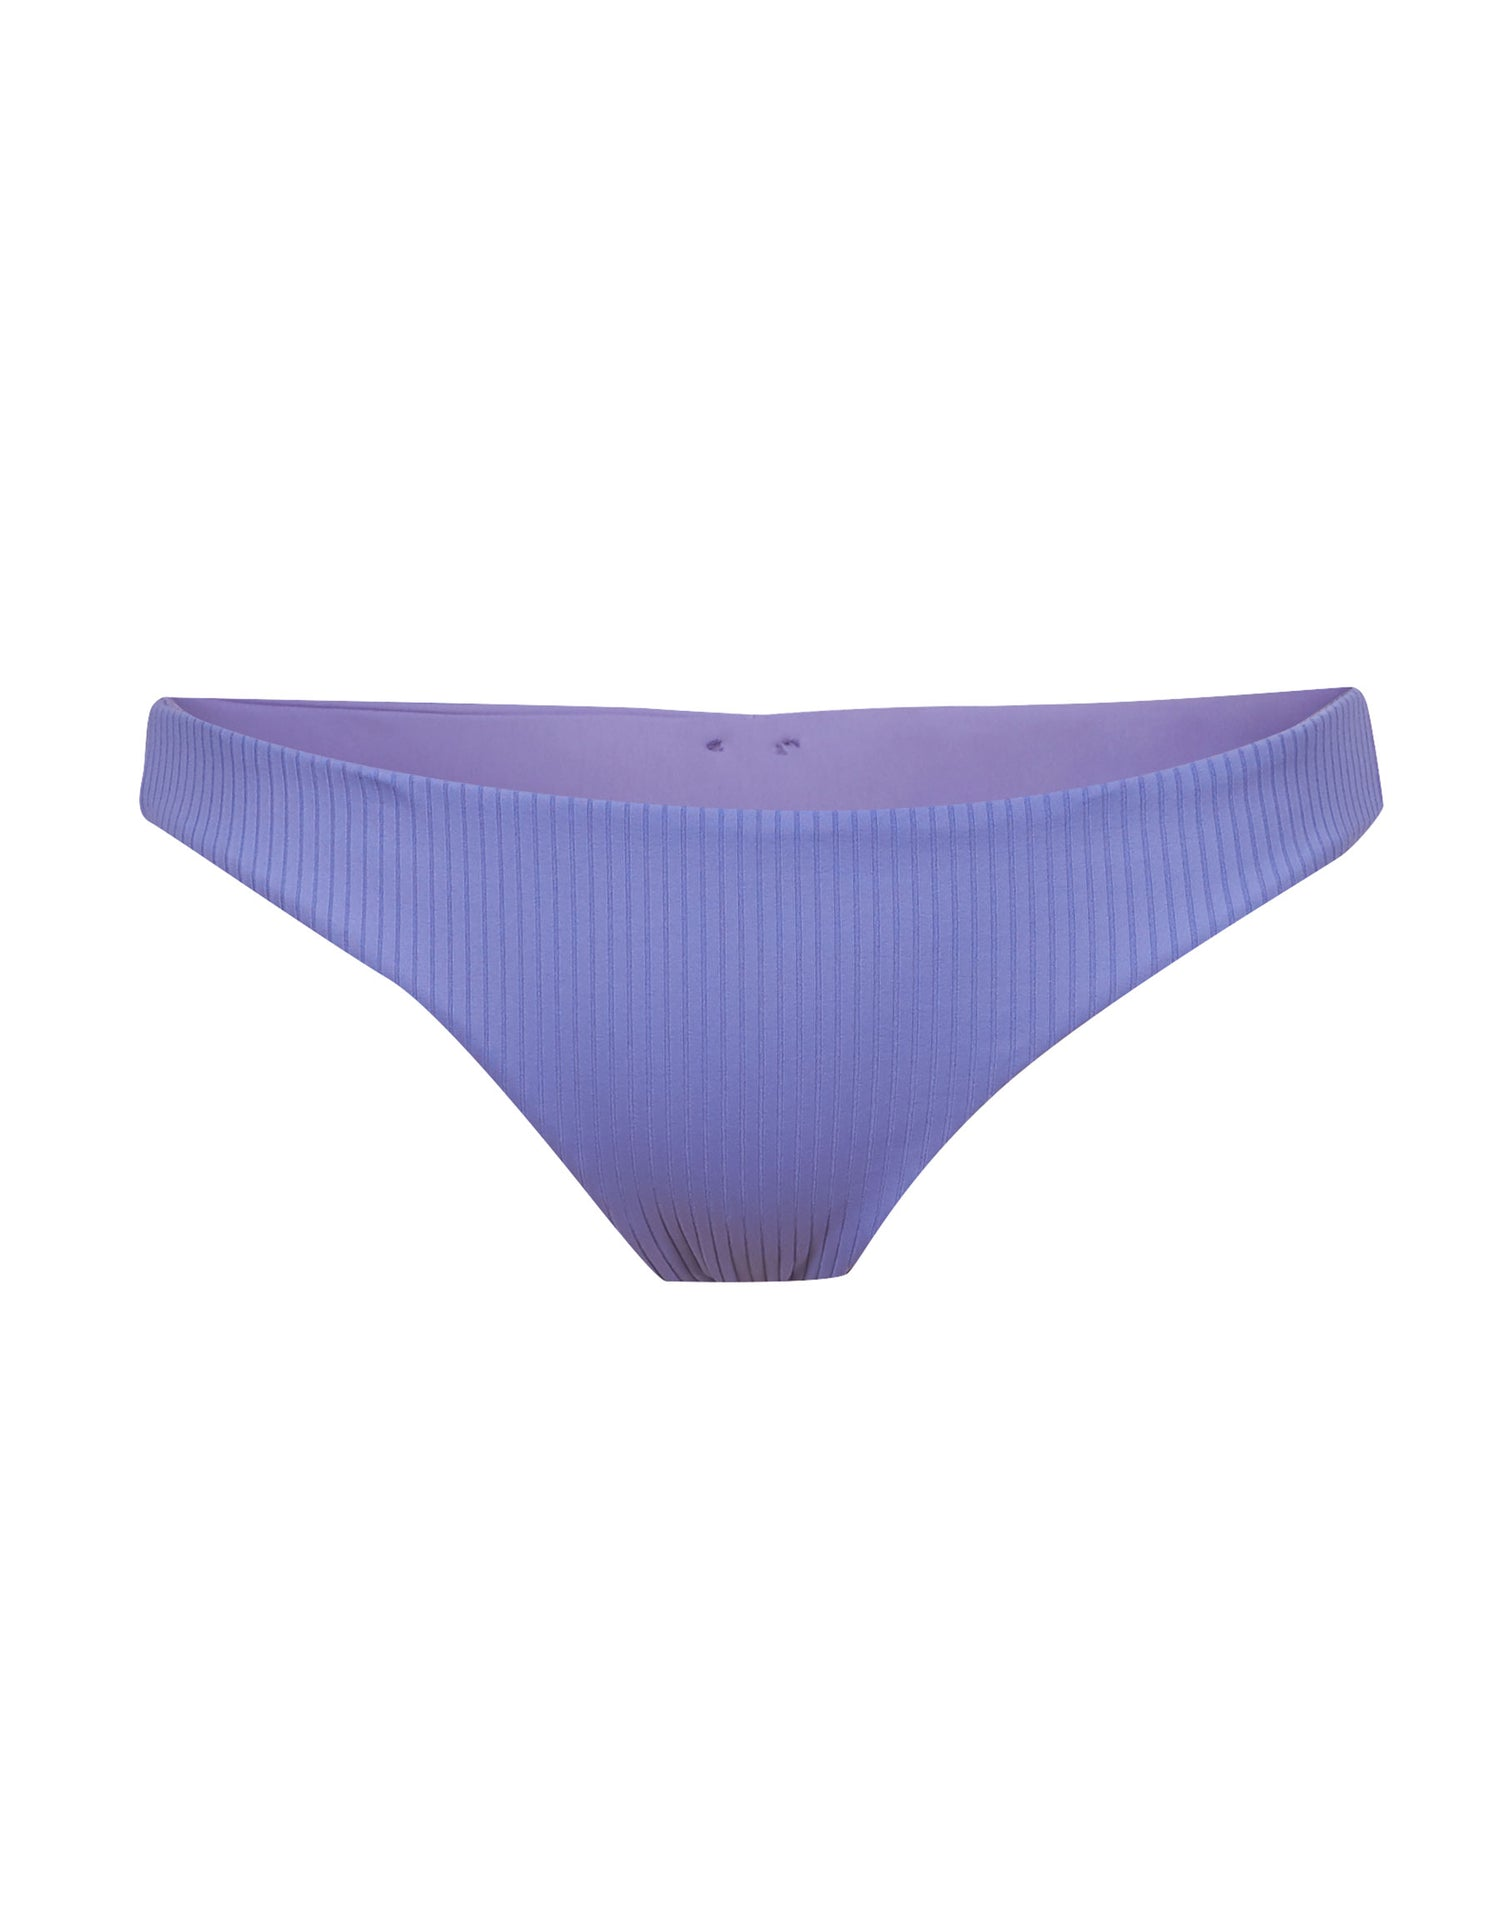 Angela Skimpy Bikini Bottom in Lilac - product view